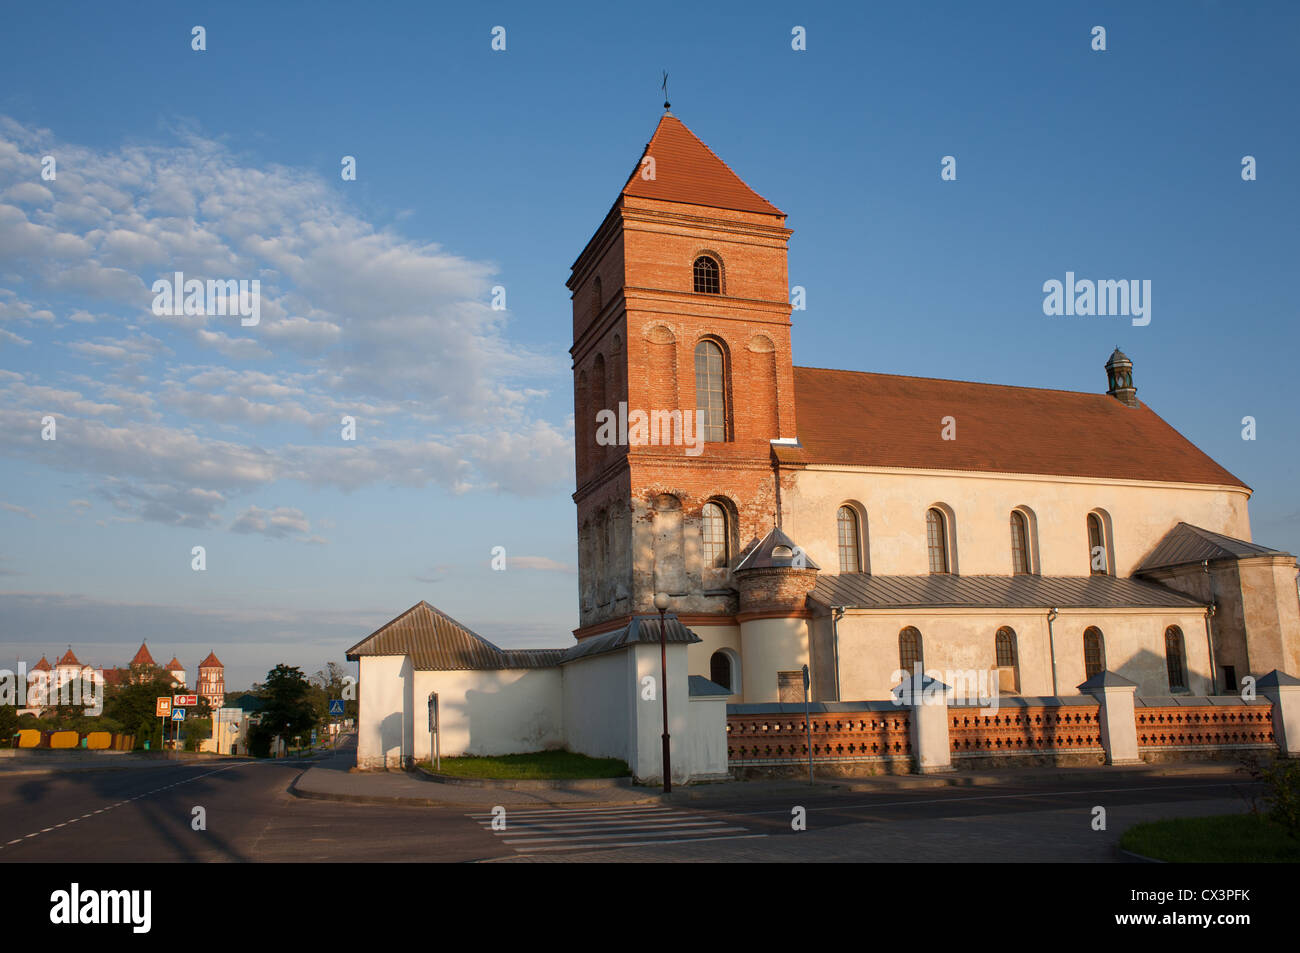 The Catholic Church Bishop of St. Nicholas and Mirsky Castle Complex in Mir, Karelichy raion, Hrodna Voblast, Belarus. - Stock Image